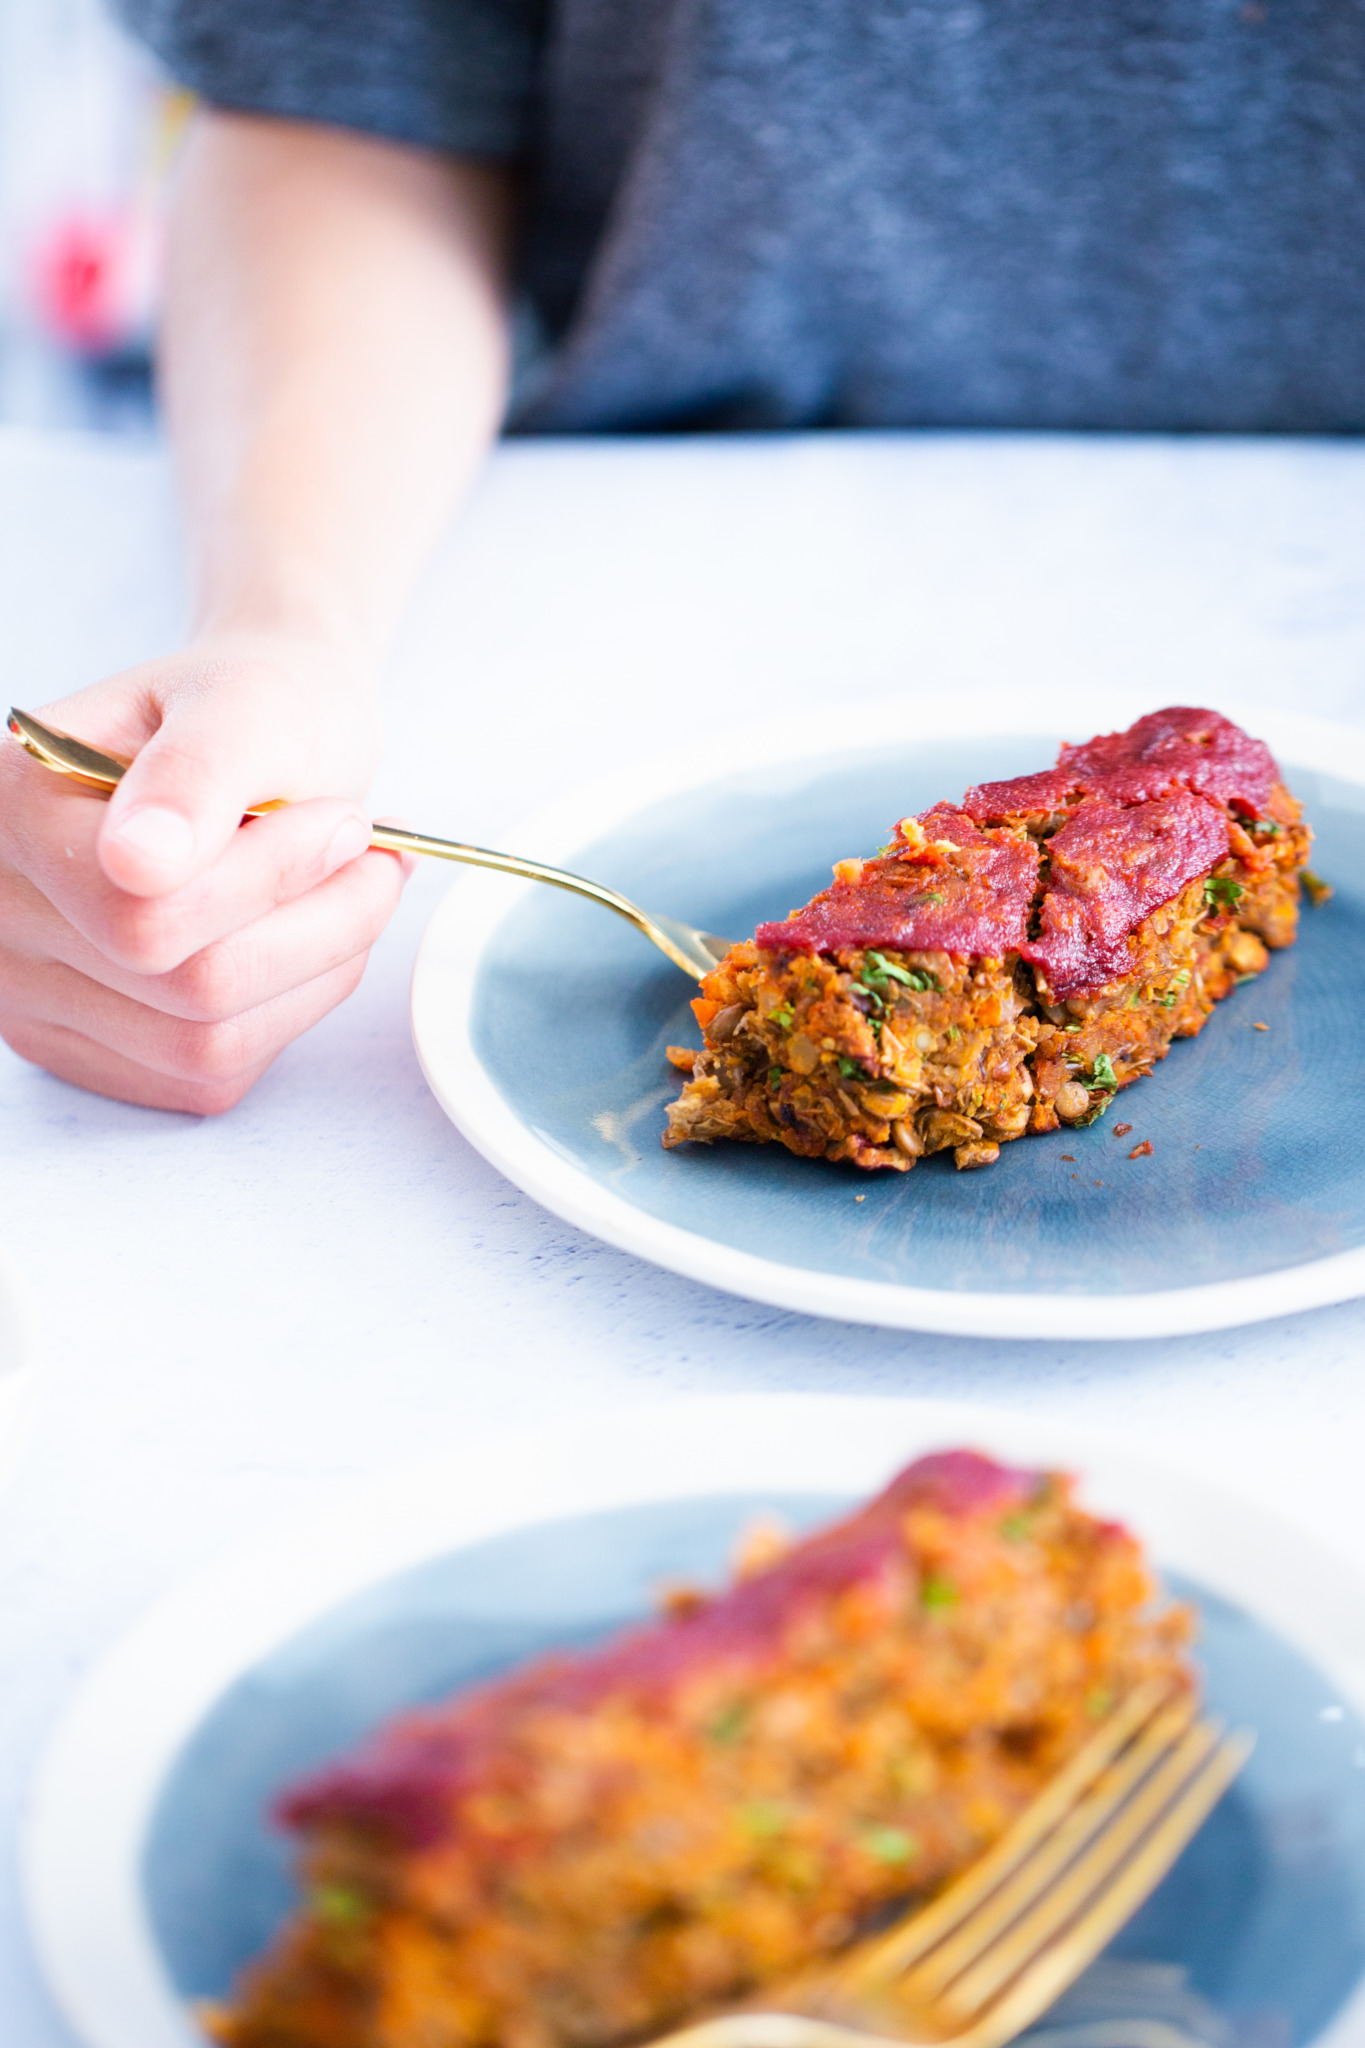 This recipe for vegan lentil loaf is very easy to prepare and it is perfect to start with a vegan diet or a meatless weekday.